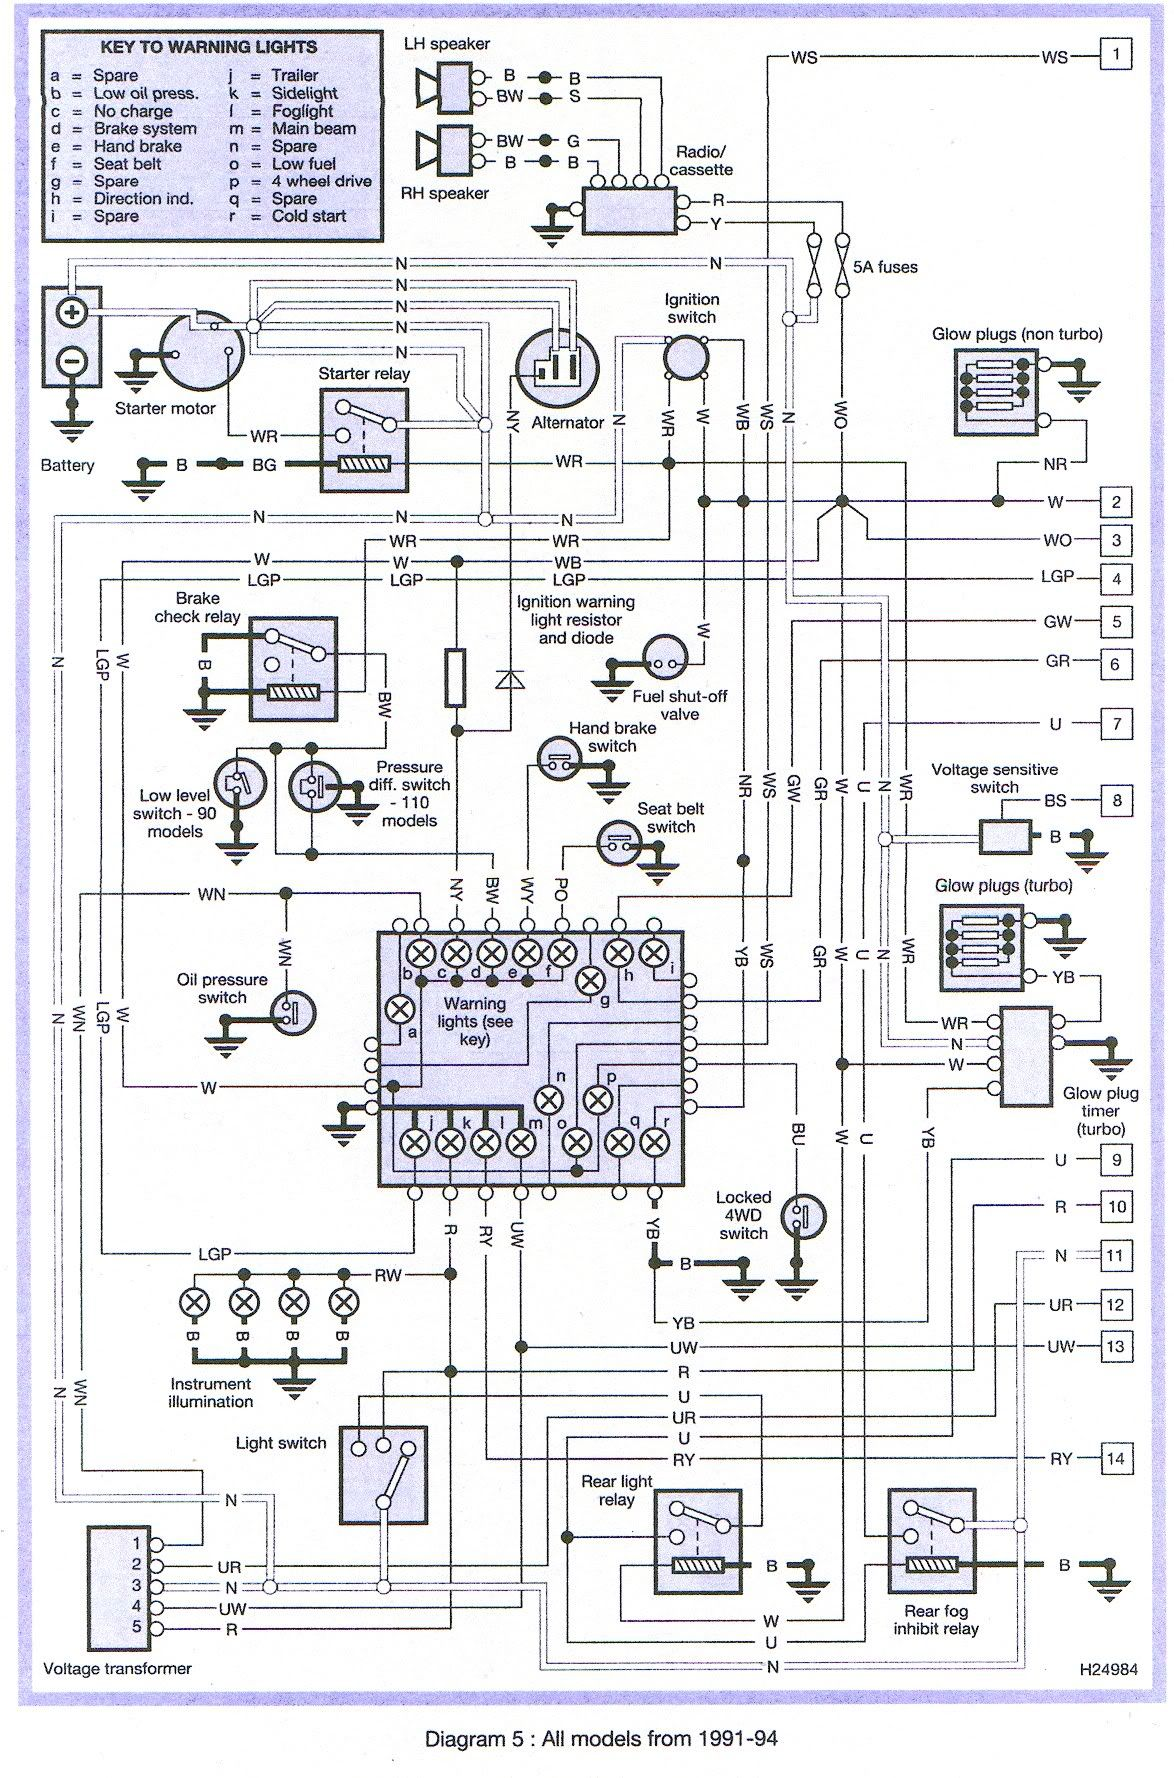 small resolution of land rover discovery 1 radio wiring diagram wiring diagrams scematic mgb wiring diagram 97 land